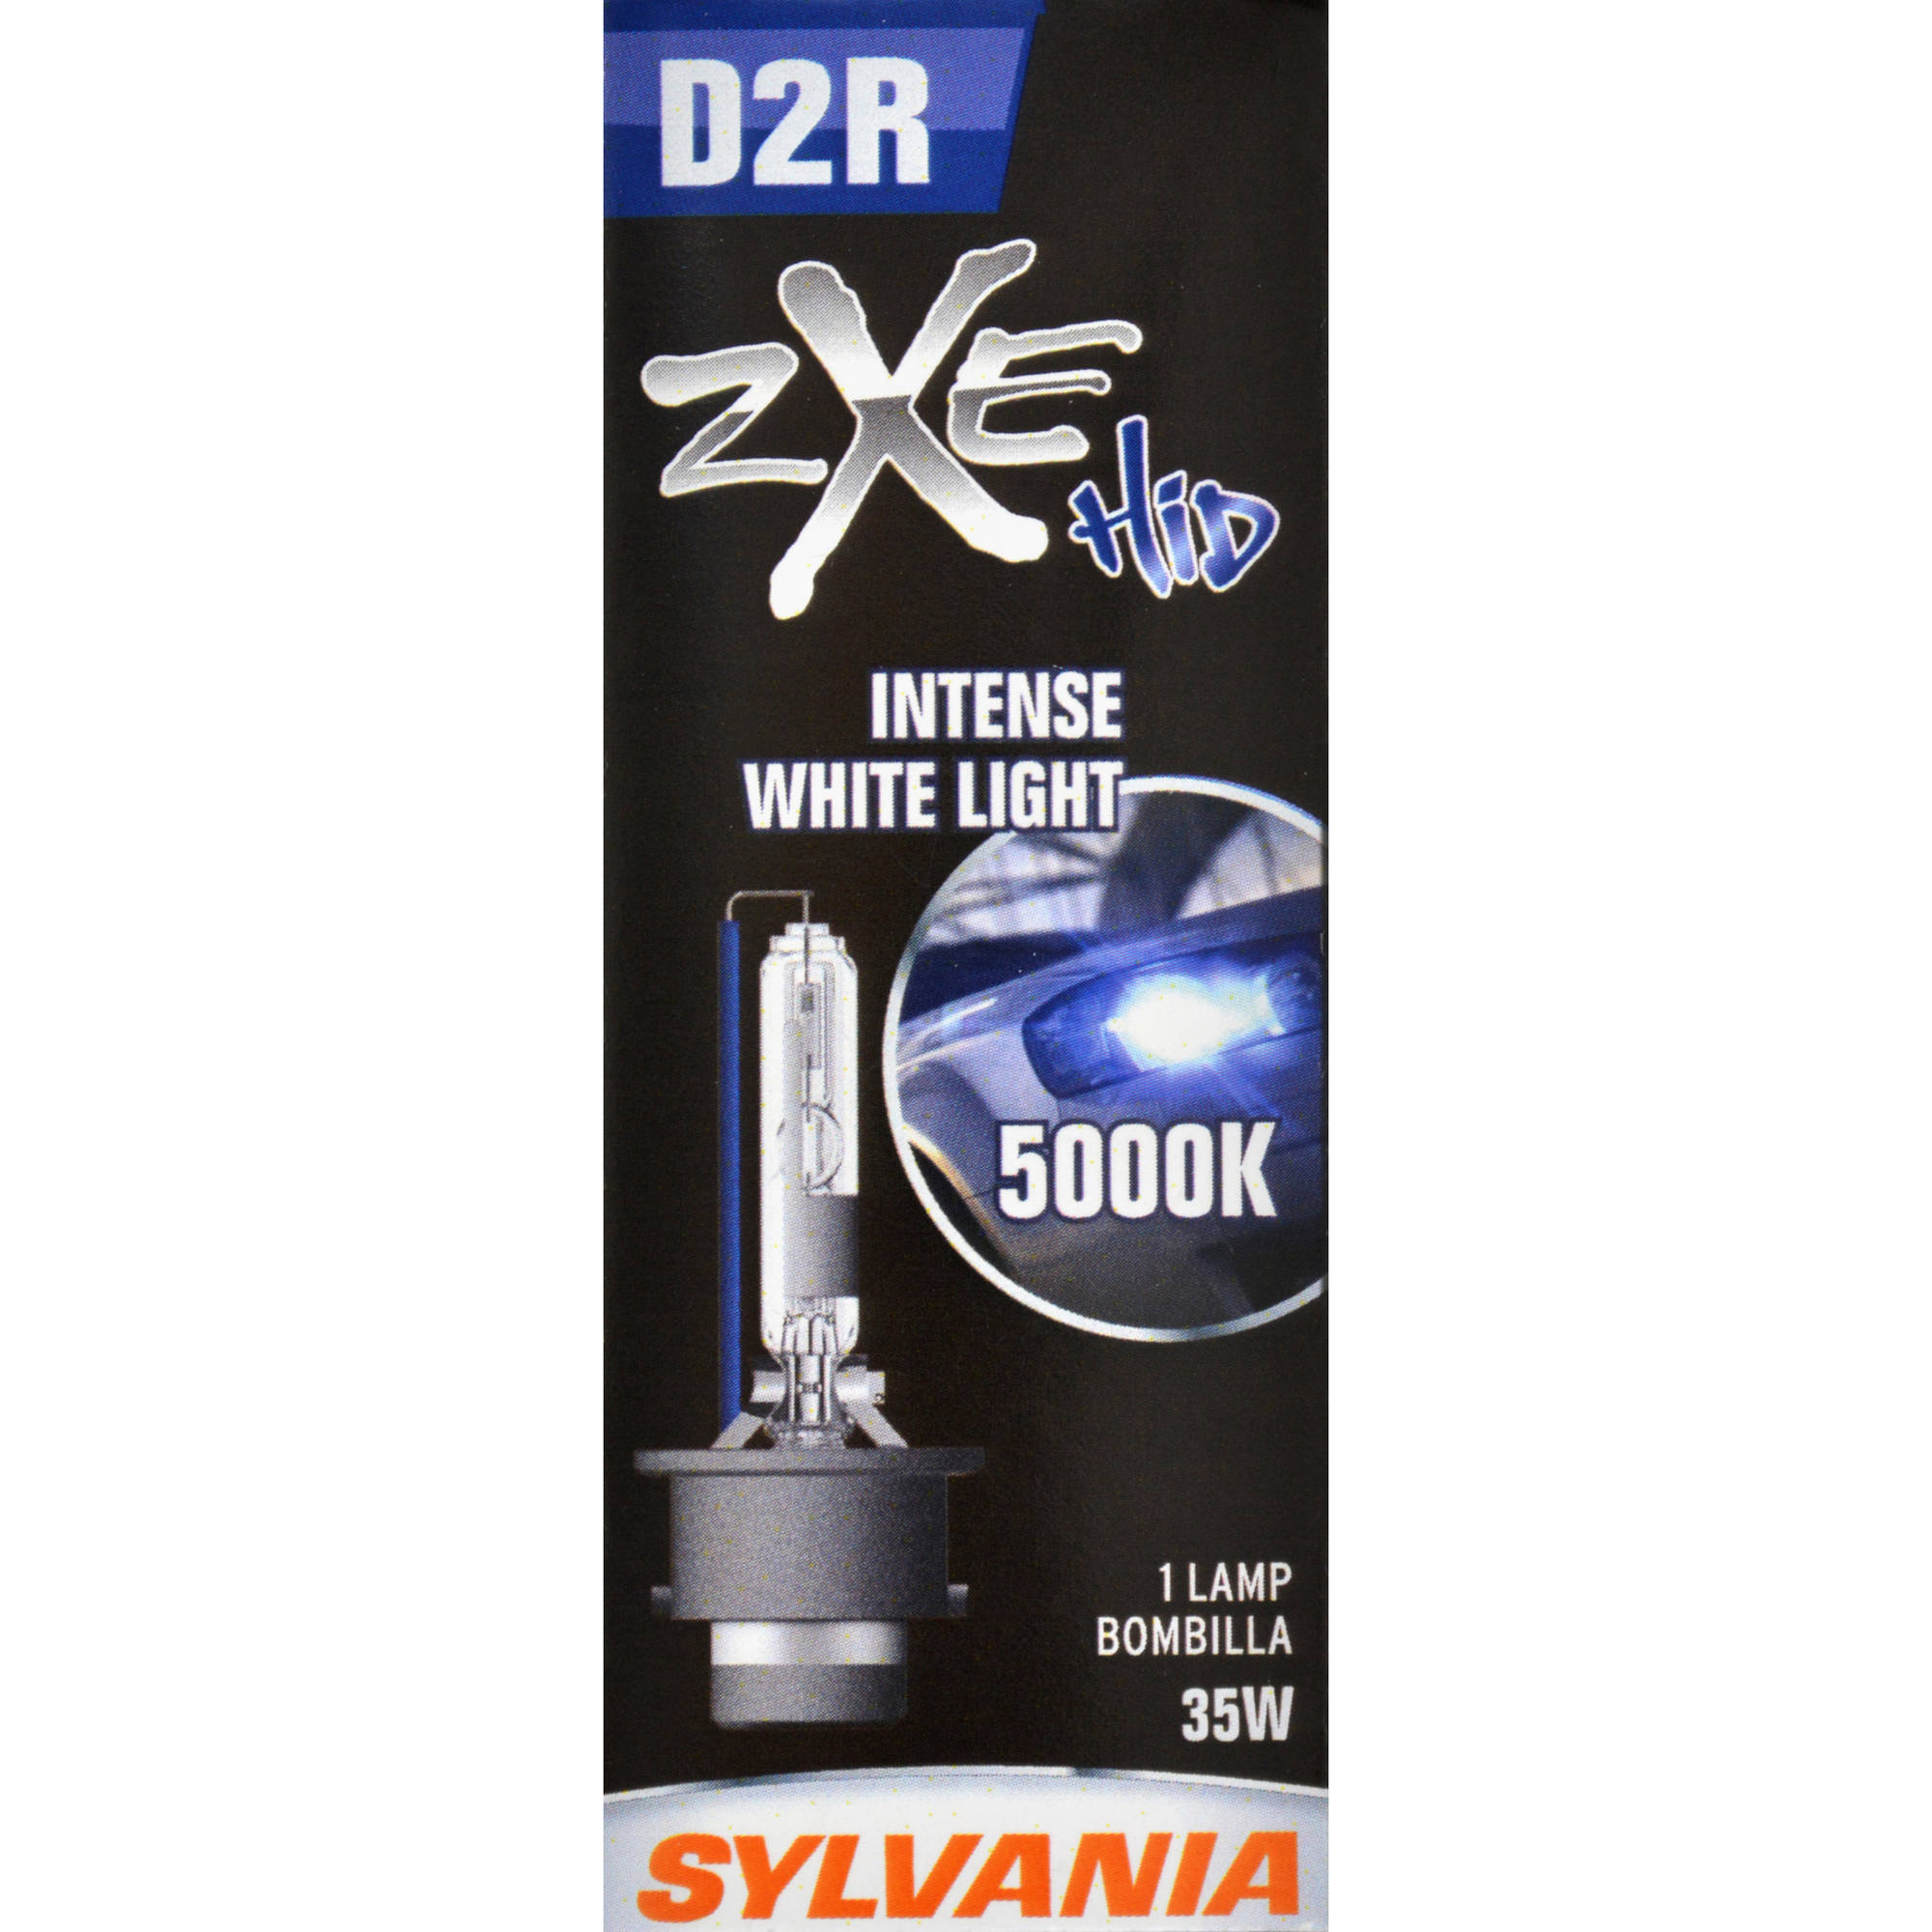 Sylvania D2R SilverStar zXe Headlight, Single Pack